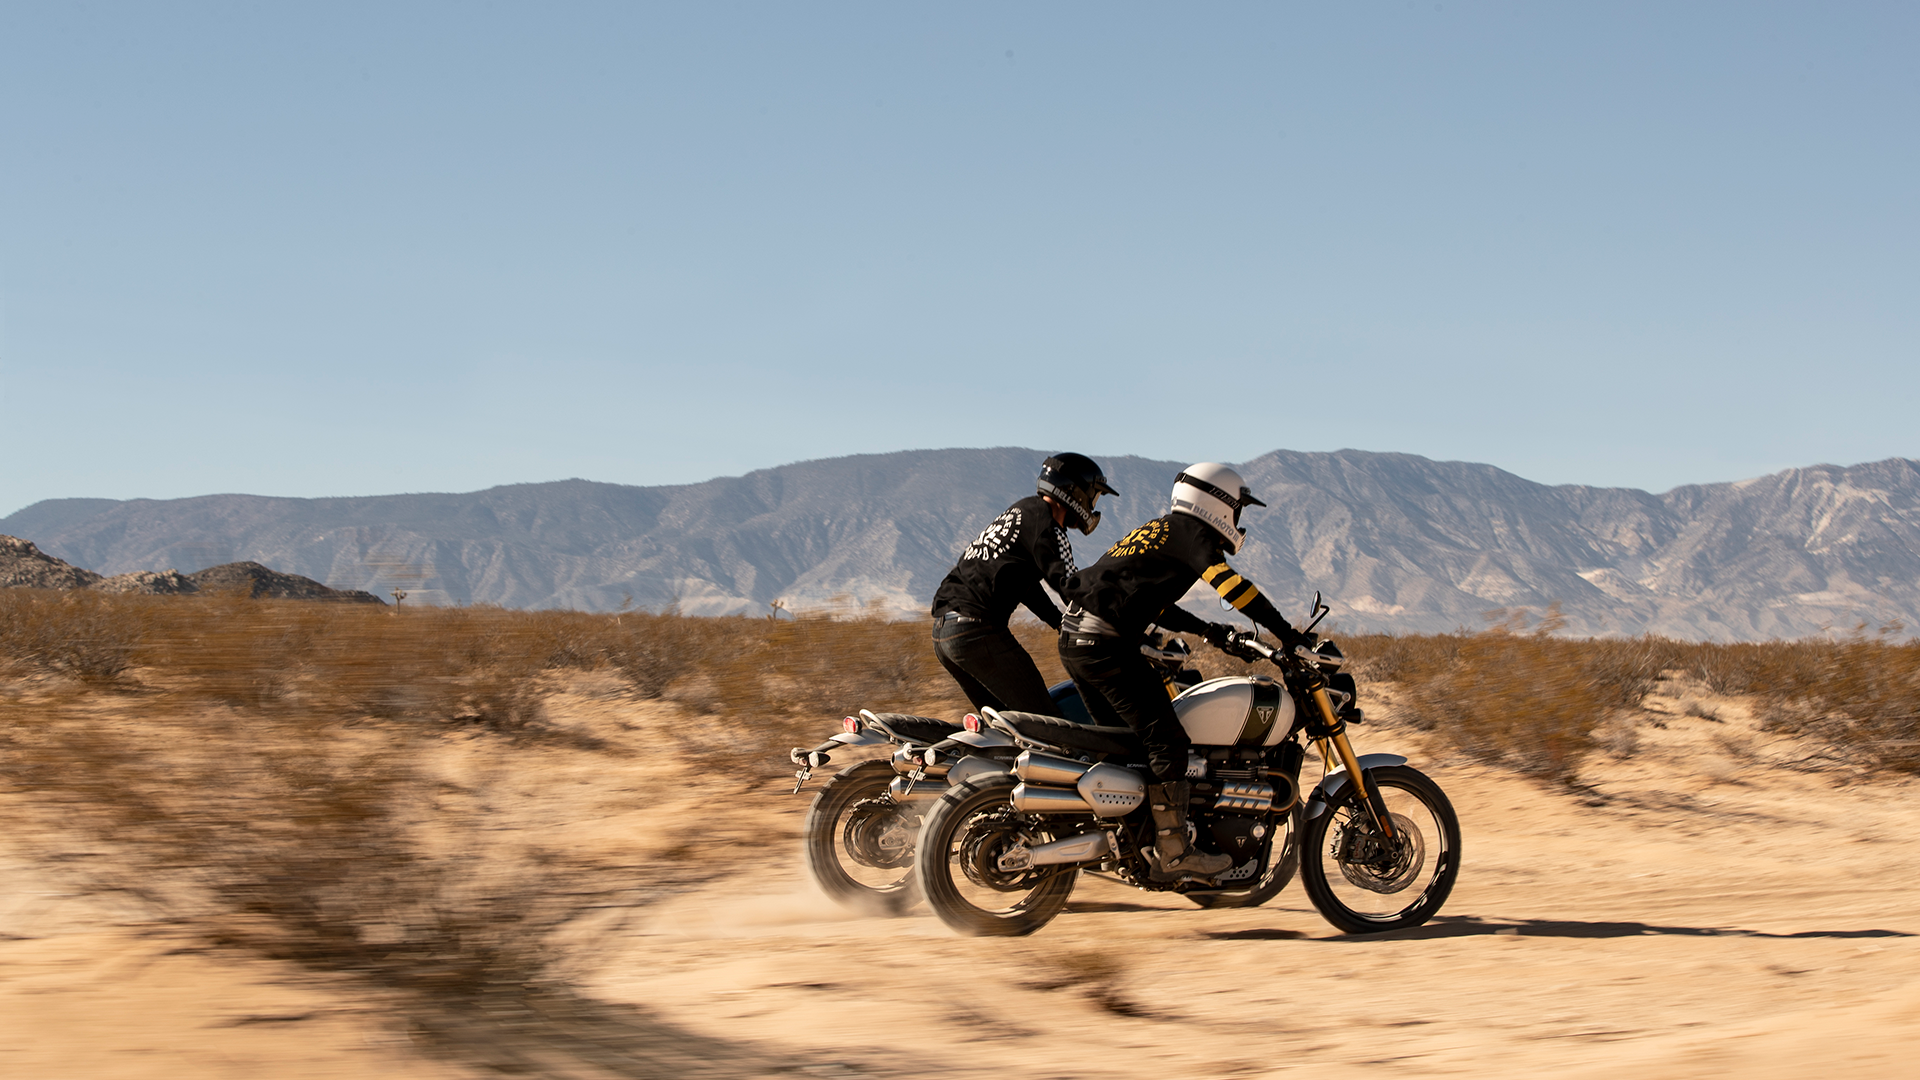 Two Triumph Scrambler 1200s scrambling across the dessert in extreme off-road style